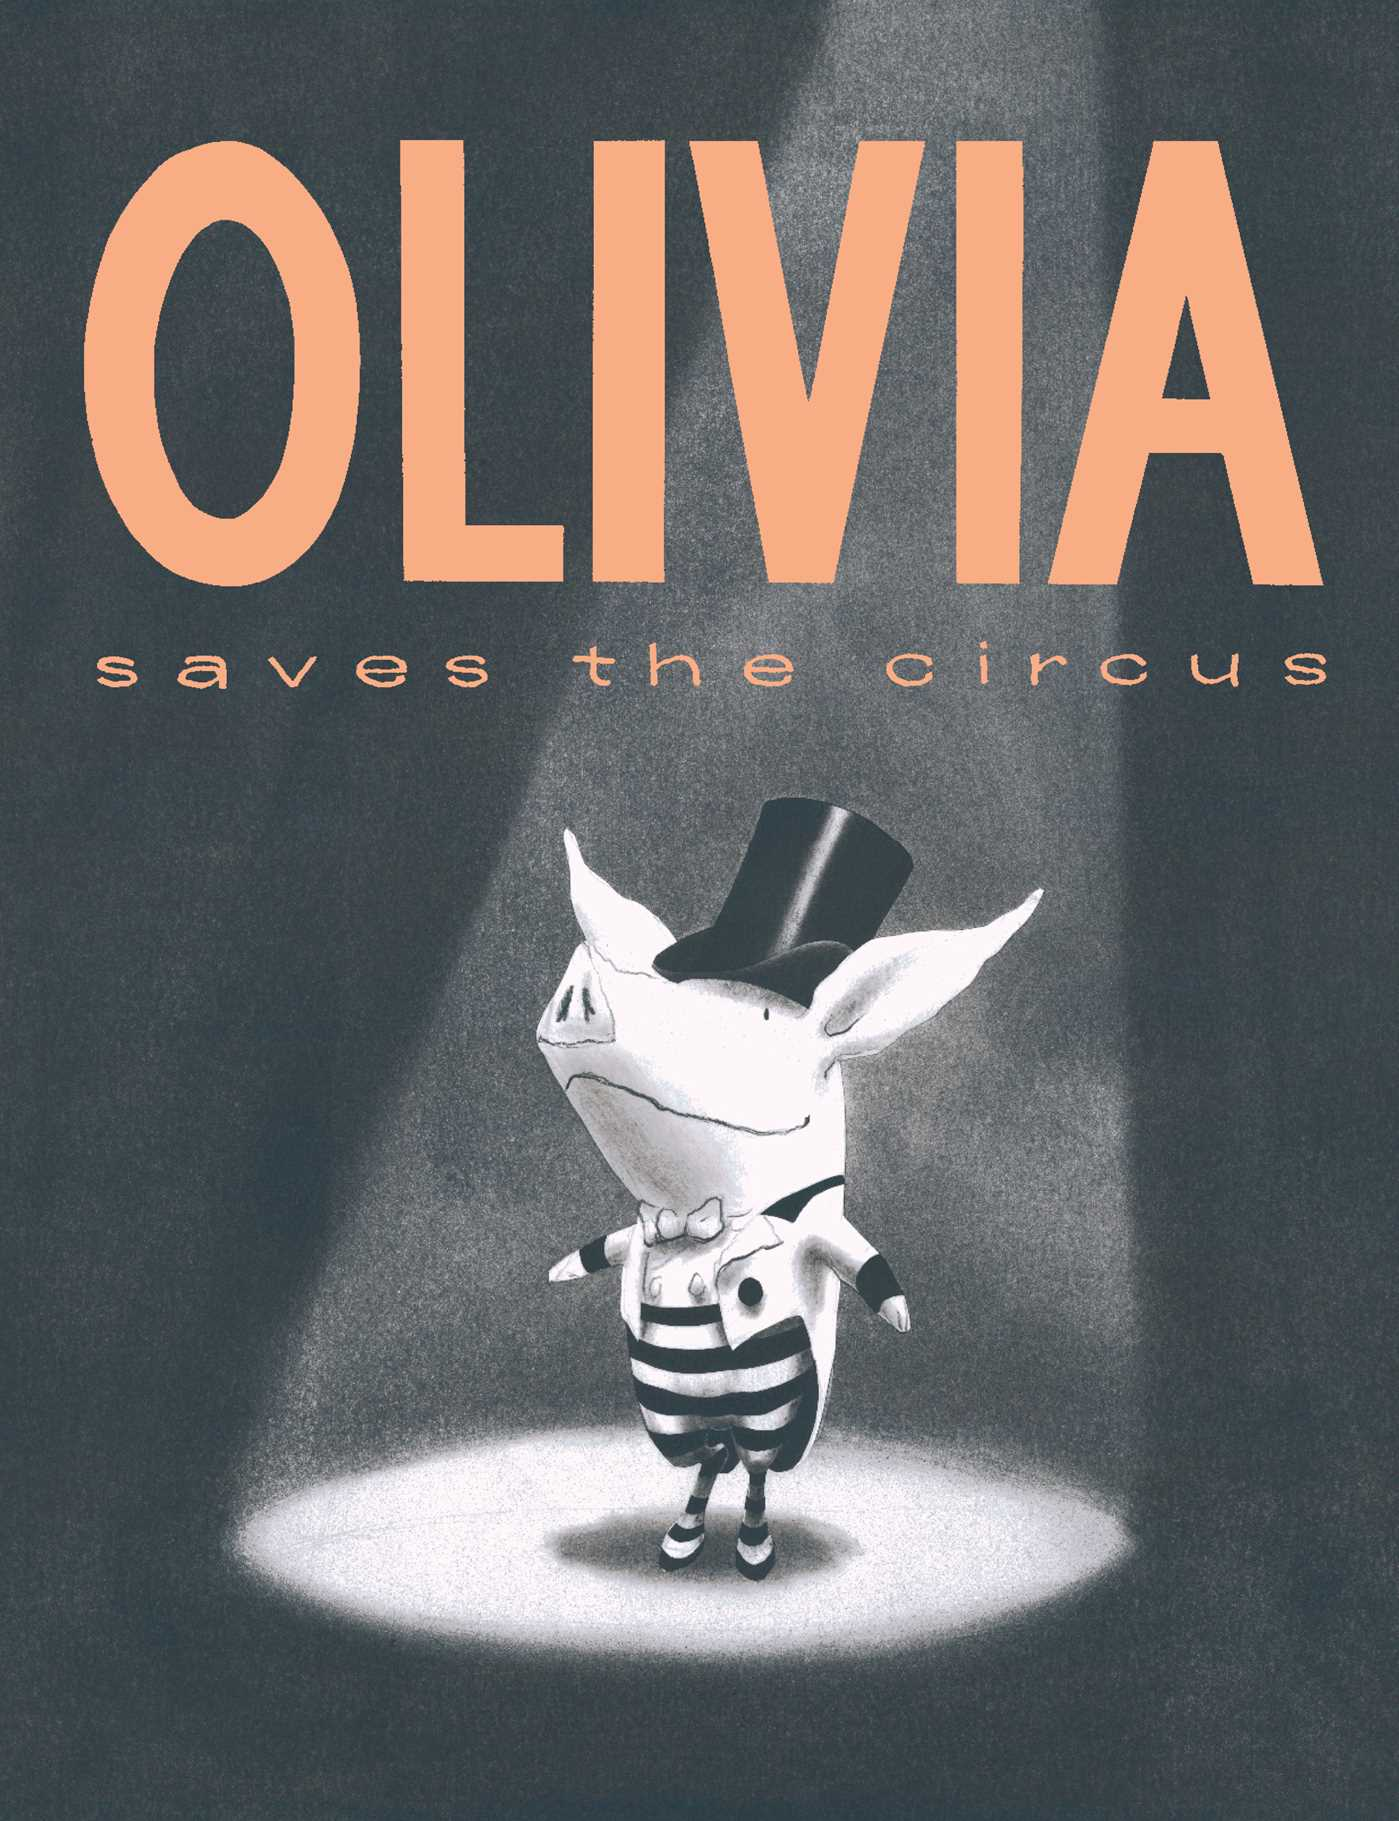 Olivia saves the circus 9781442427334 hr